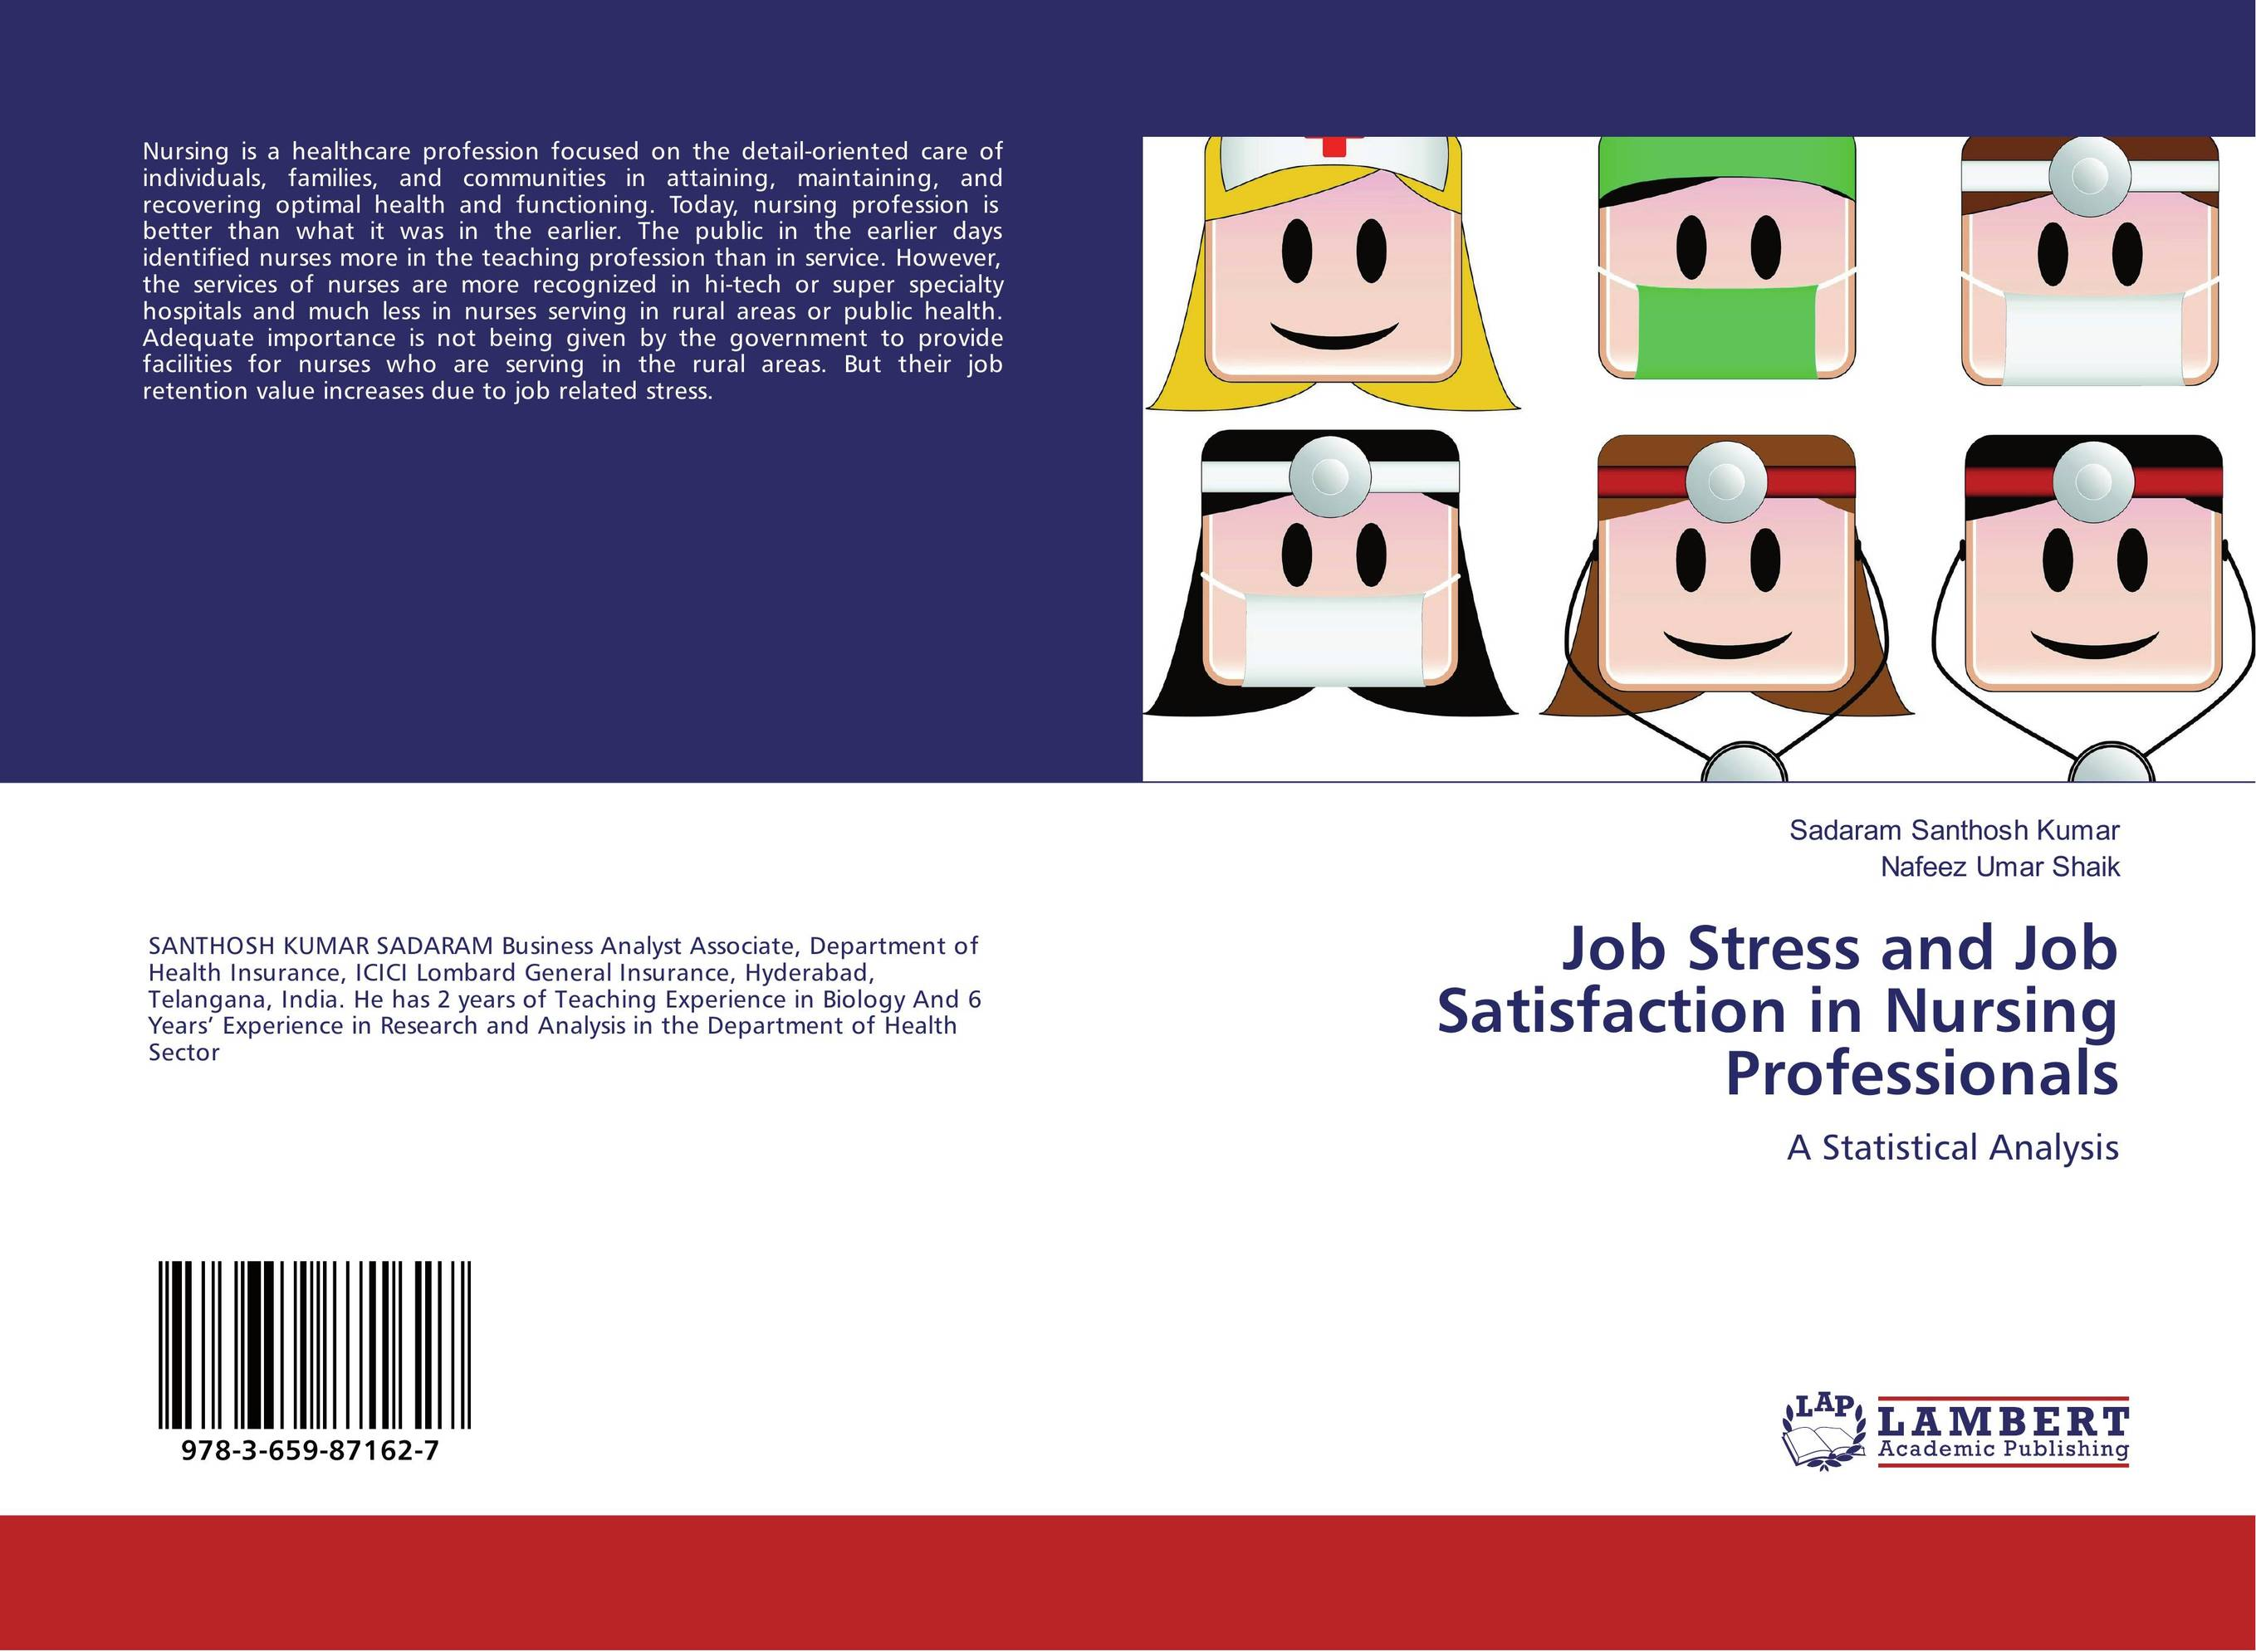 Job Stress and Job Satisfaction in Nursing Professionals the meaning of voice to experienced nurses in magnet hospitals